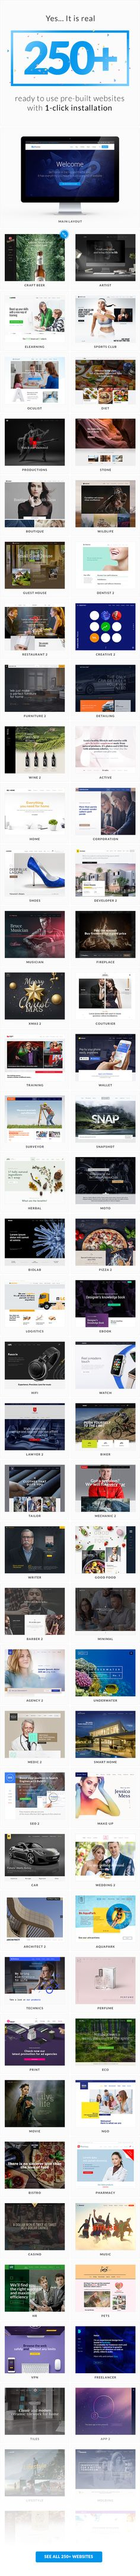 50 Best Ui kits images in 2019 | Interface design, UI Design